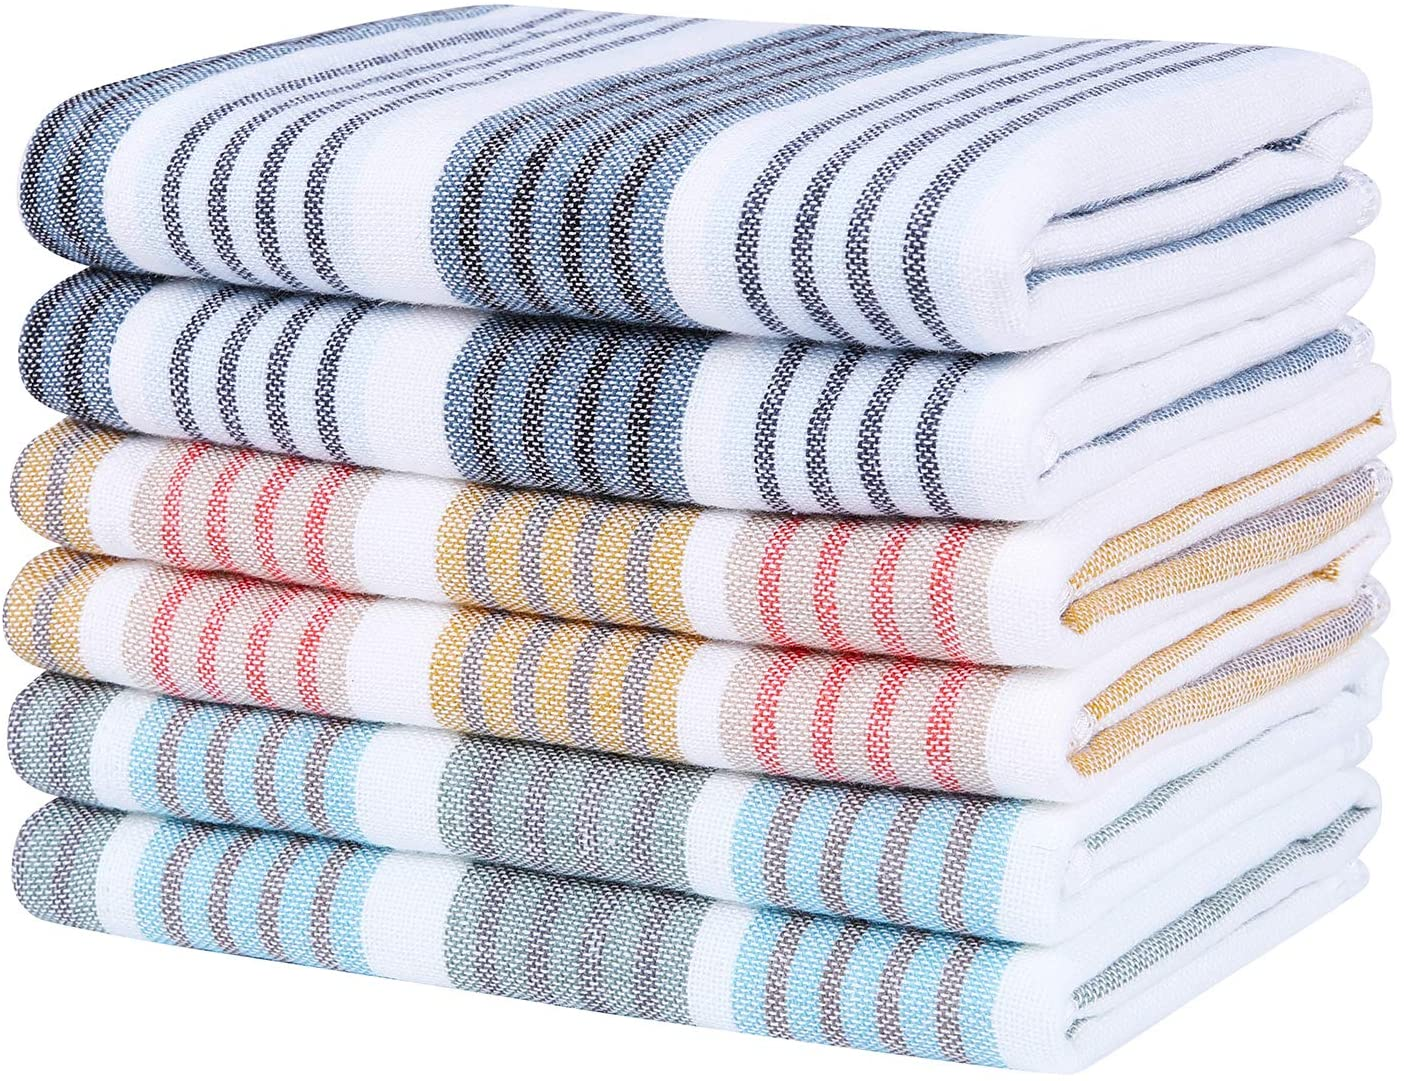 Homaxy 100% Natural Cotton Terry Kitchen Dish Cloths, 12 x 12 inch Ultra Absorbent Drying Dish Towels, Stripe Plaid Dish Rags - Great for Household Cooking Cleaning, 6pc/Set, Mix Color